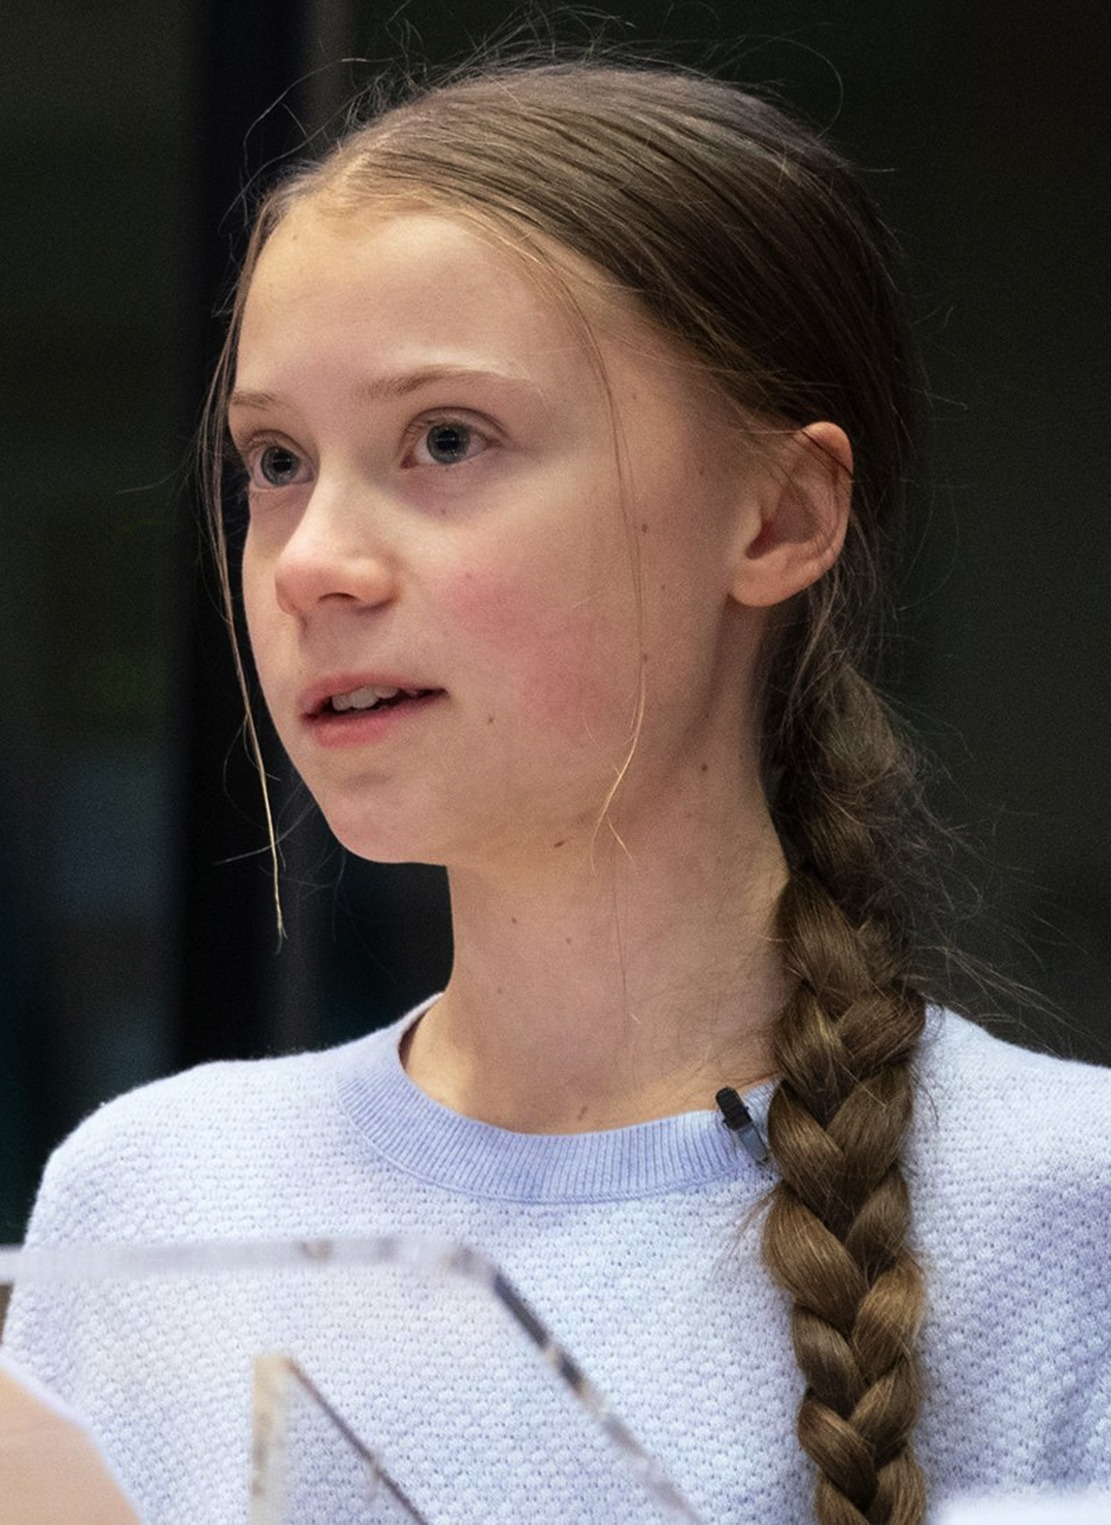 Greta_Thunberg_urges_MEPs_to_show_climate_leadership_(49618310531)_(cropped)